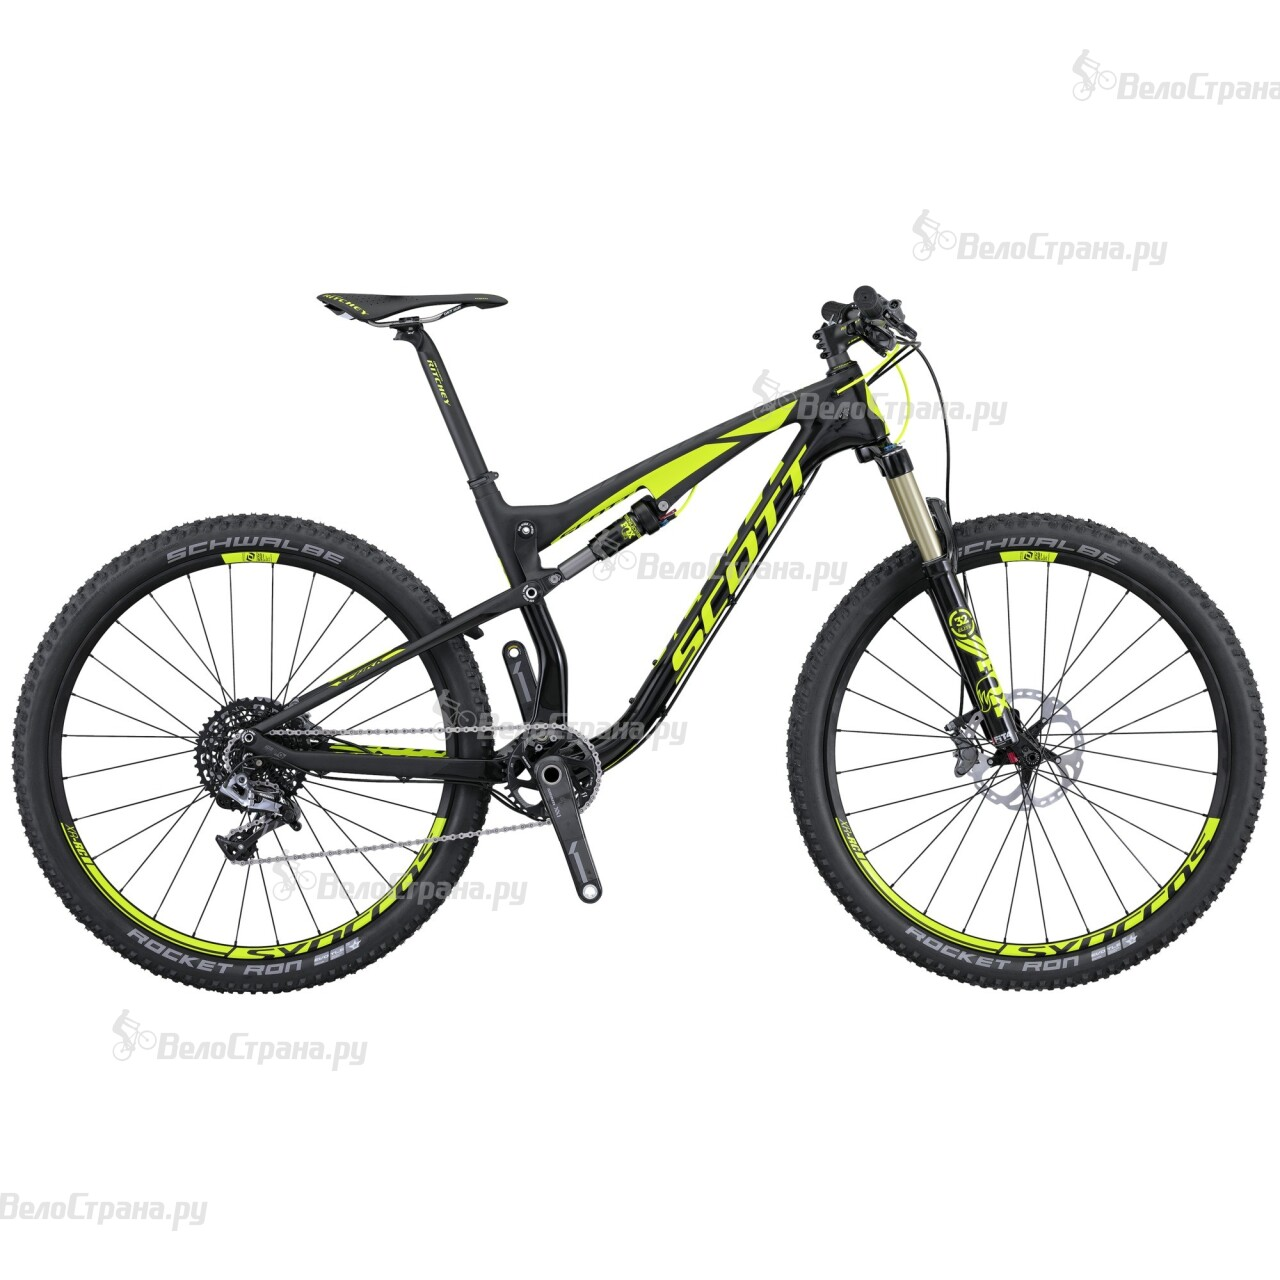 Велосипед Scott Spark 700 RC (2016)  велосипед scott contessa spark 700 rc 2016